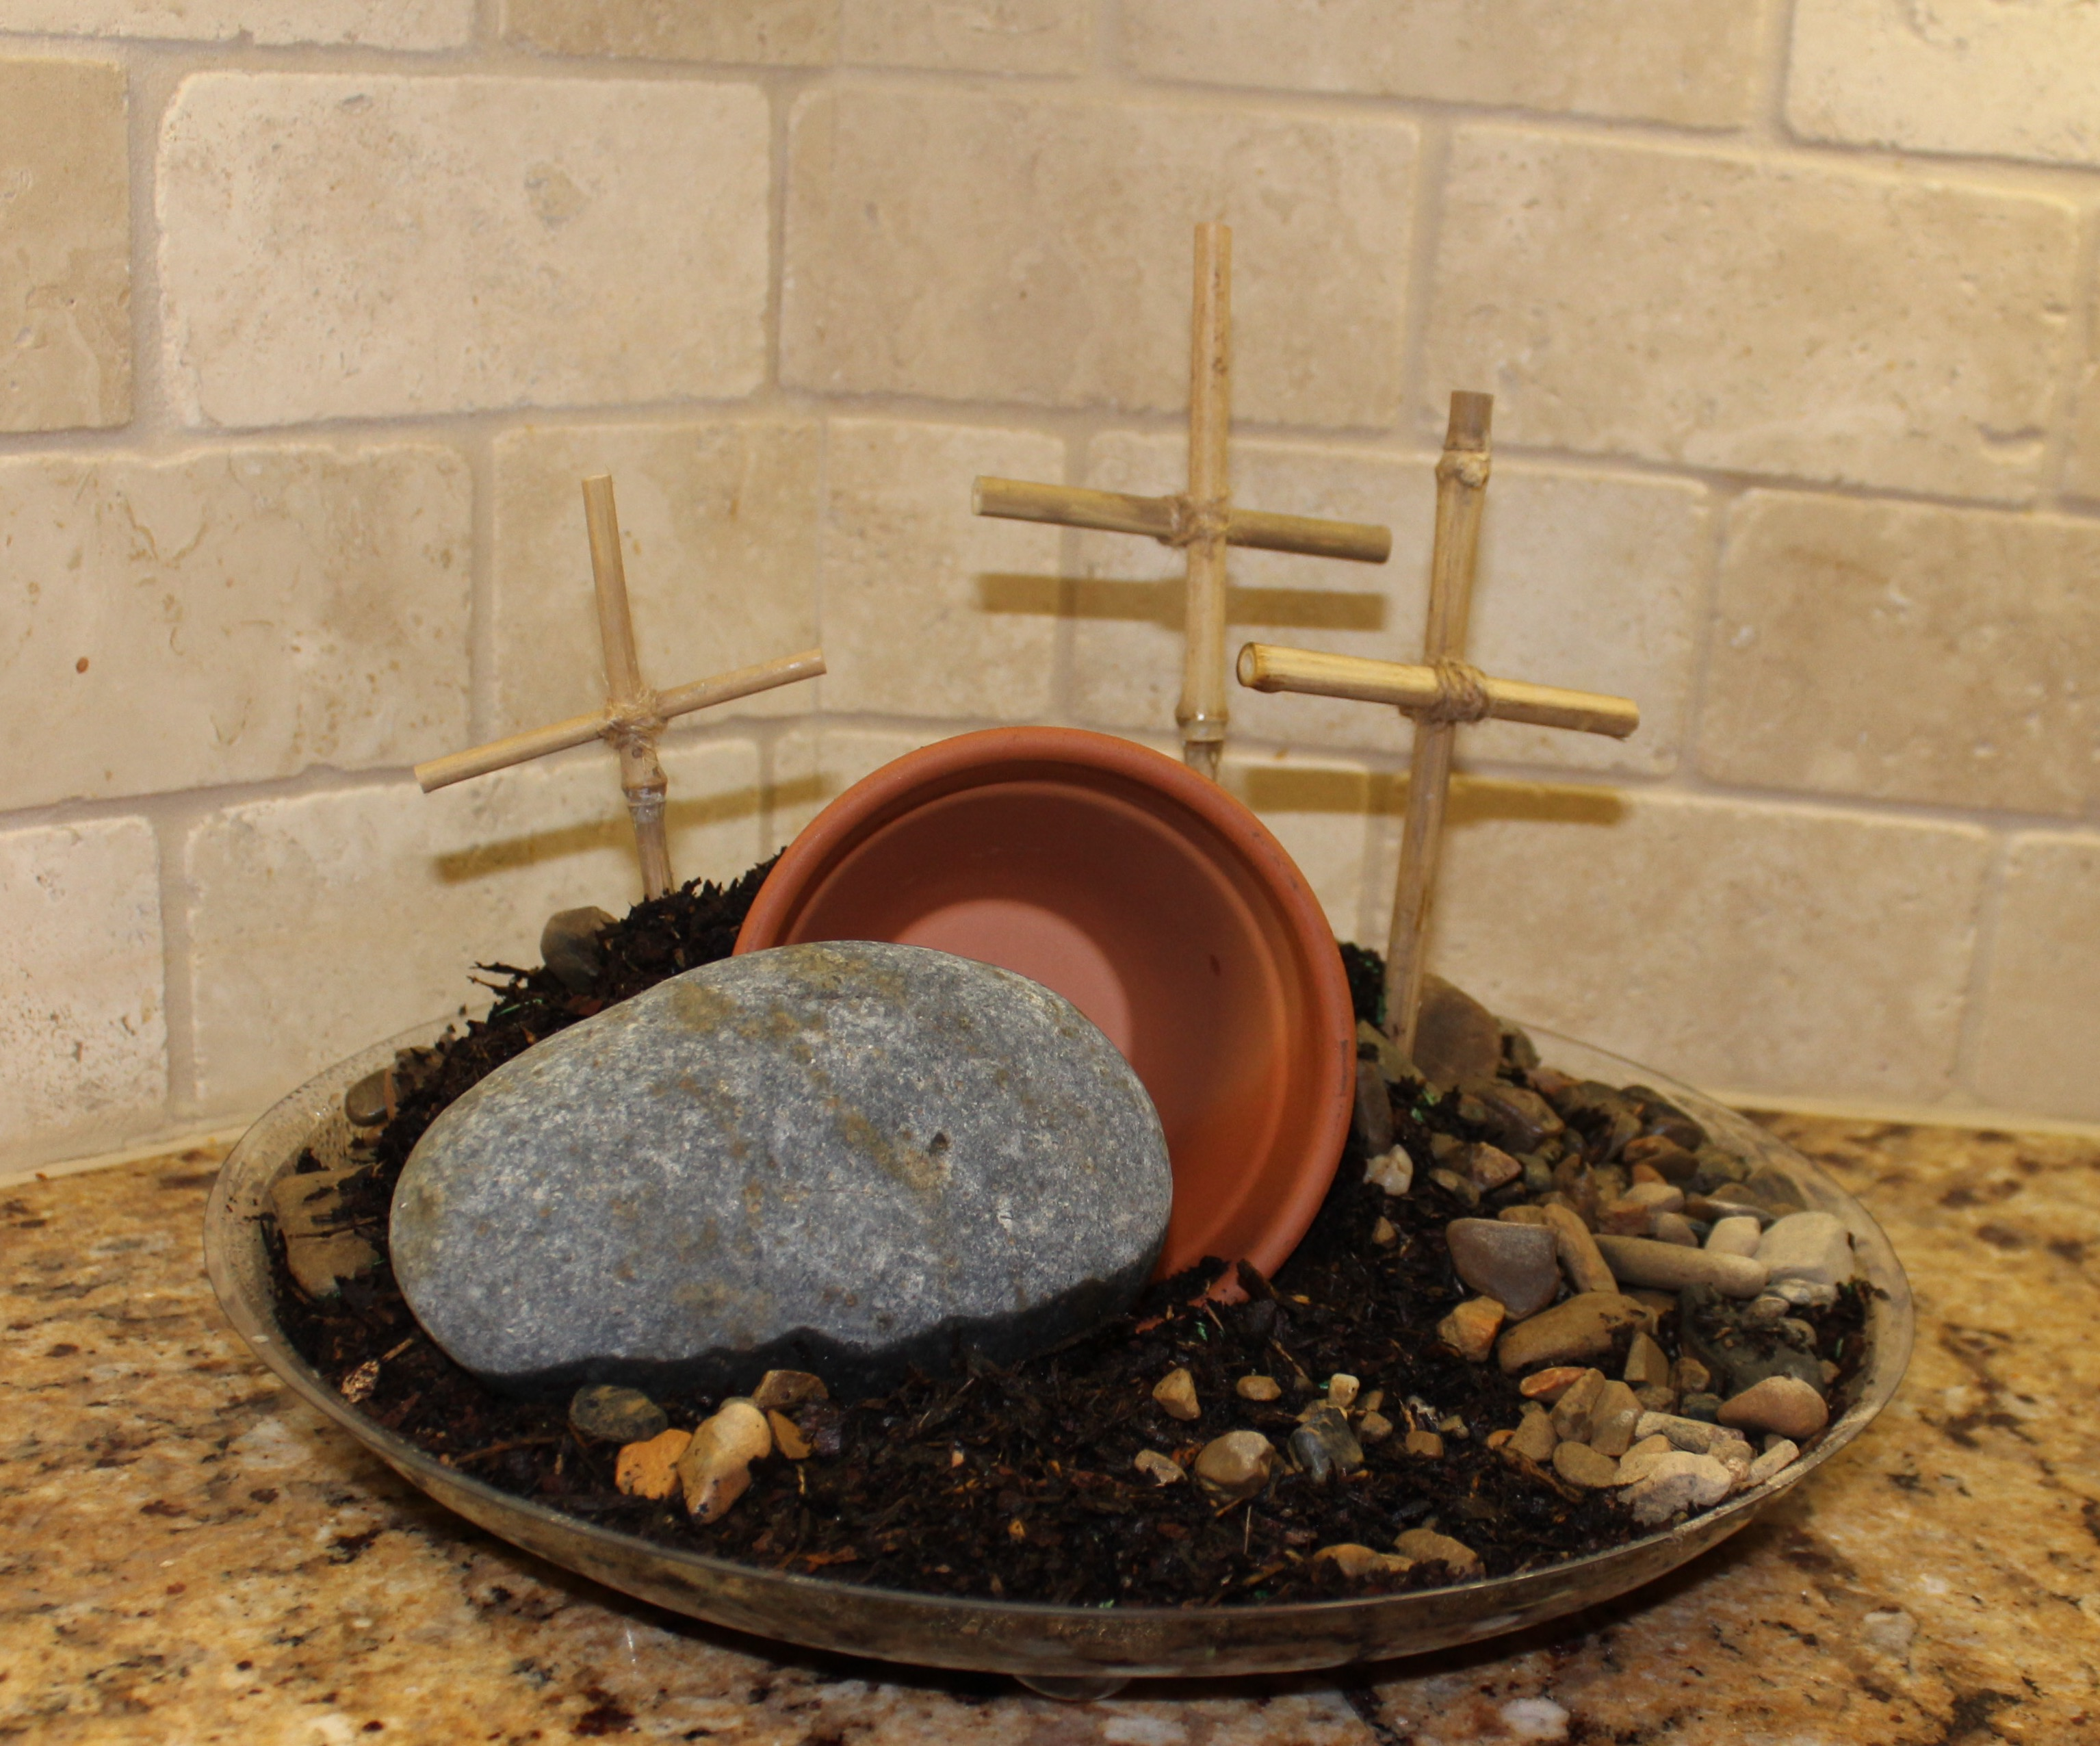 Biblical Craft Projects that Kids Love